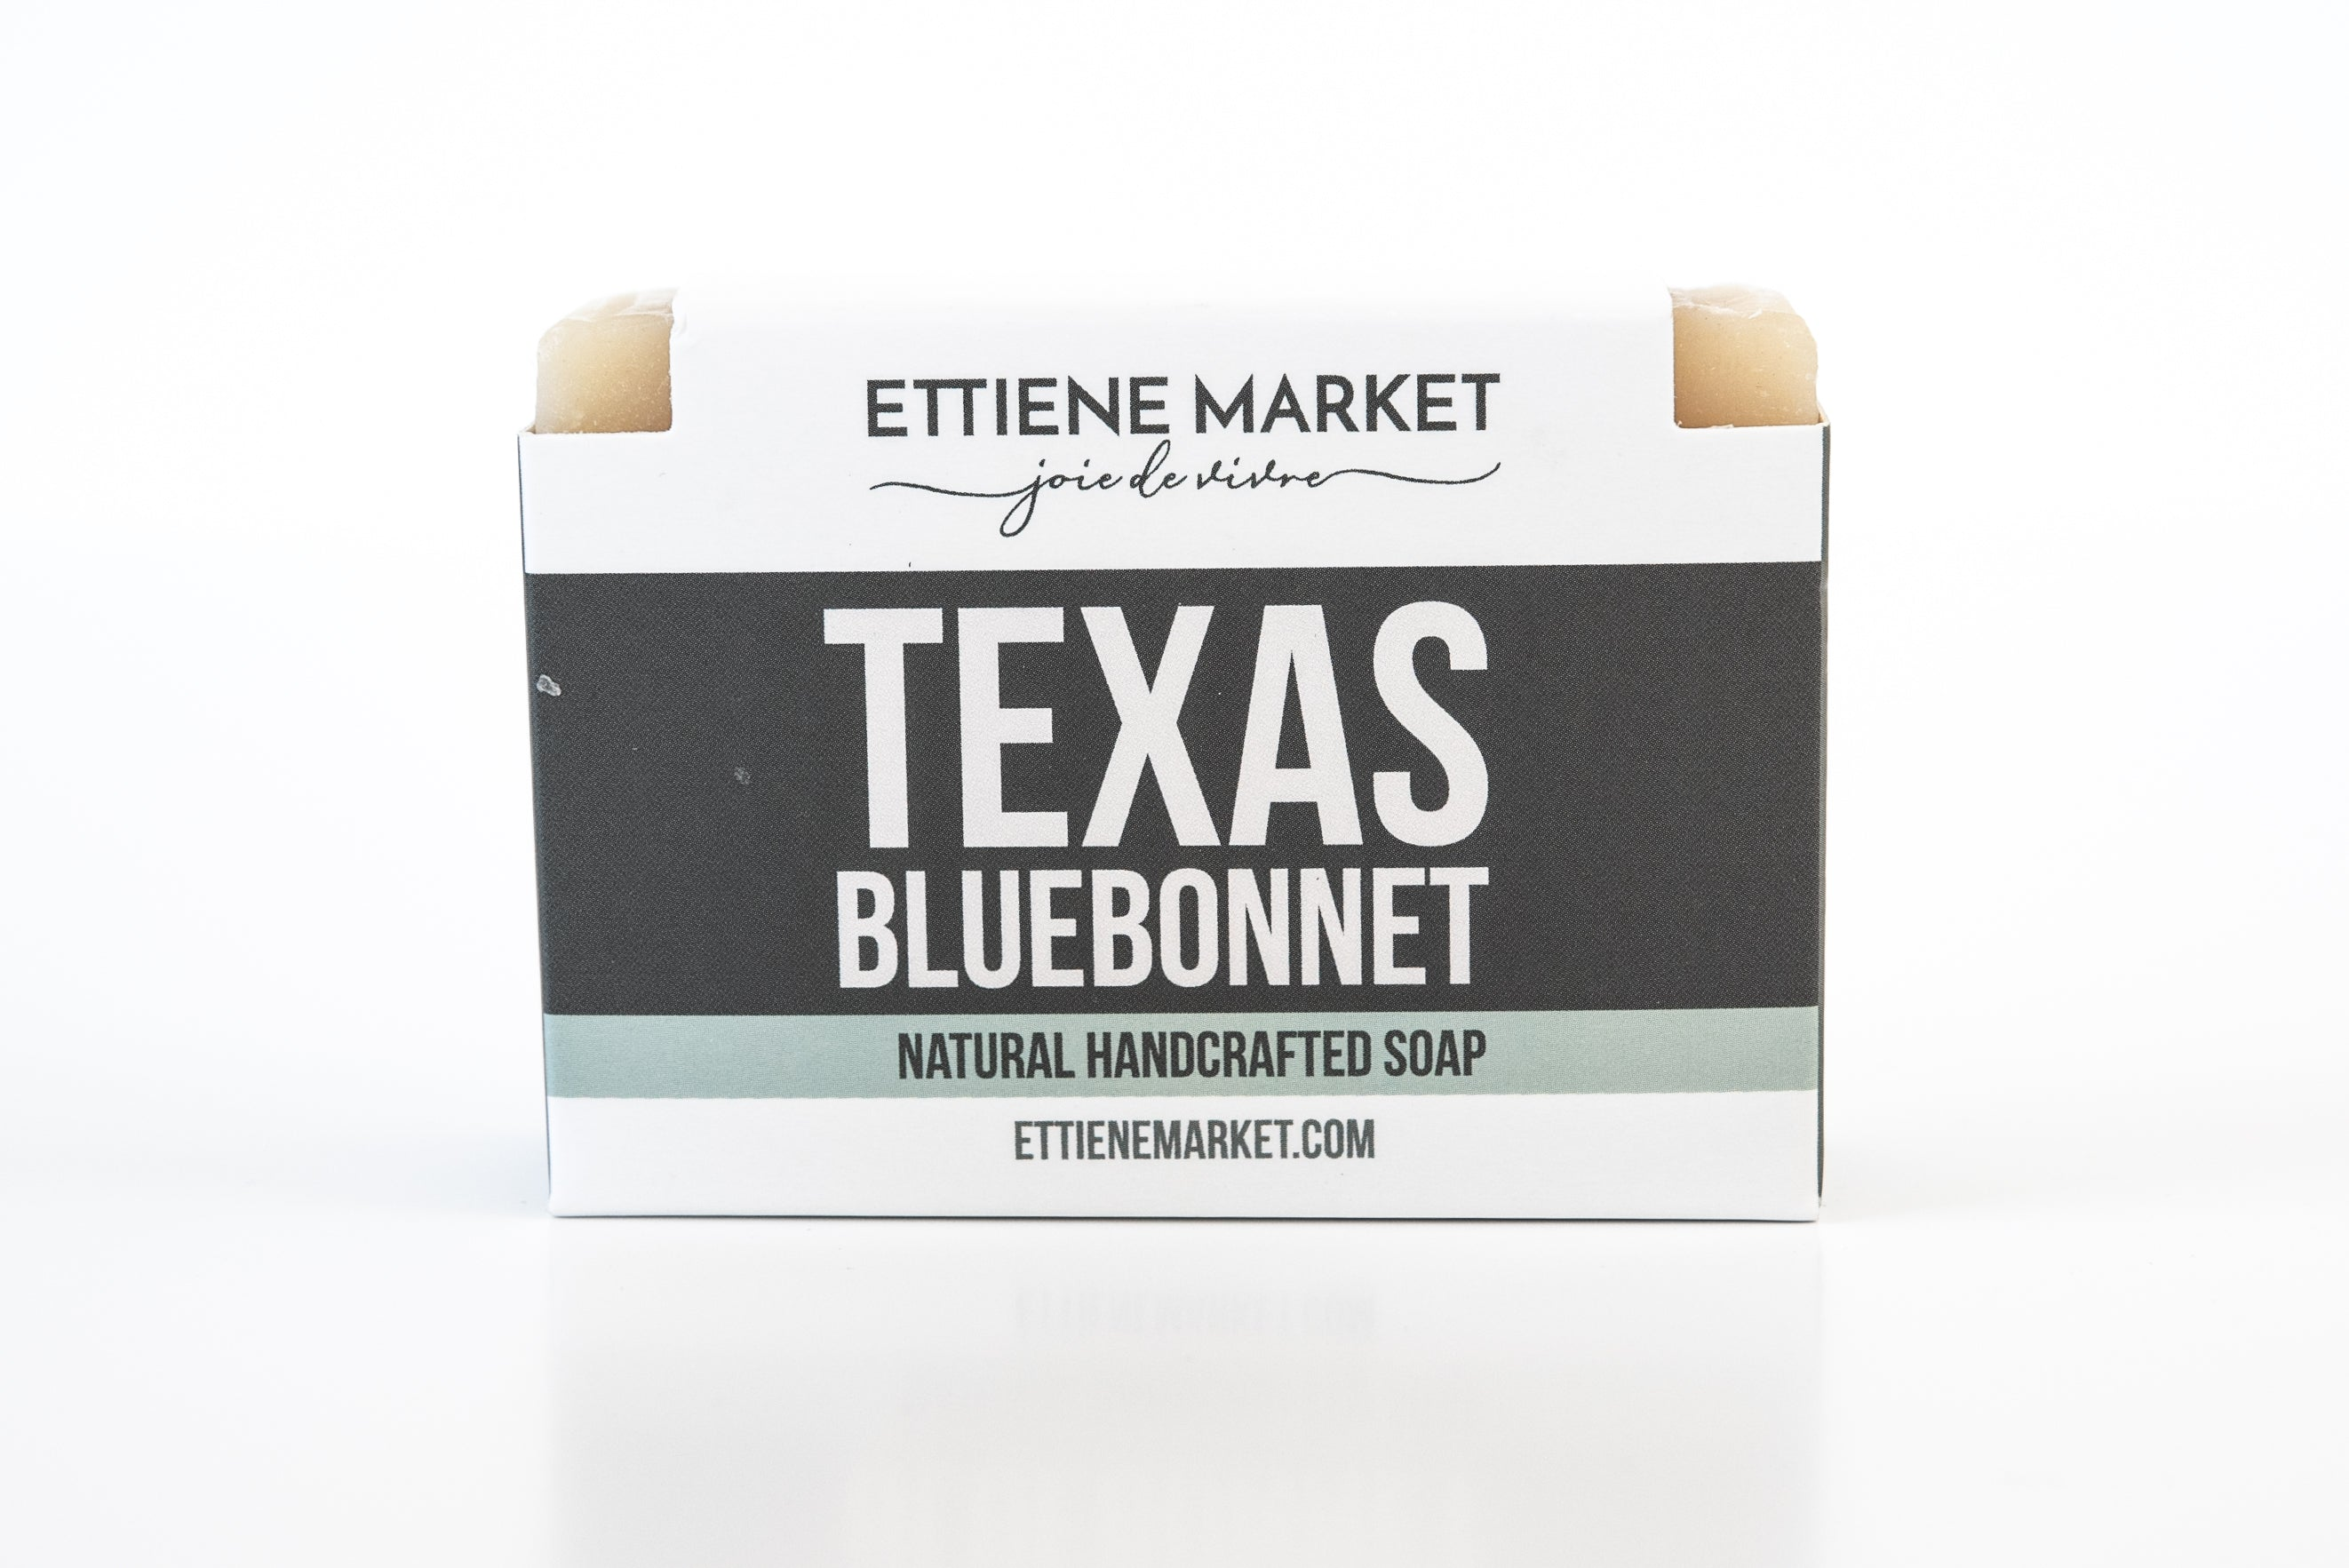 Ettiene Market Goat's Milk Soap Bar - Texas Bluebonnet